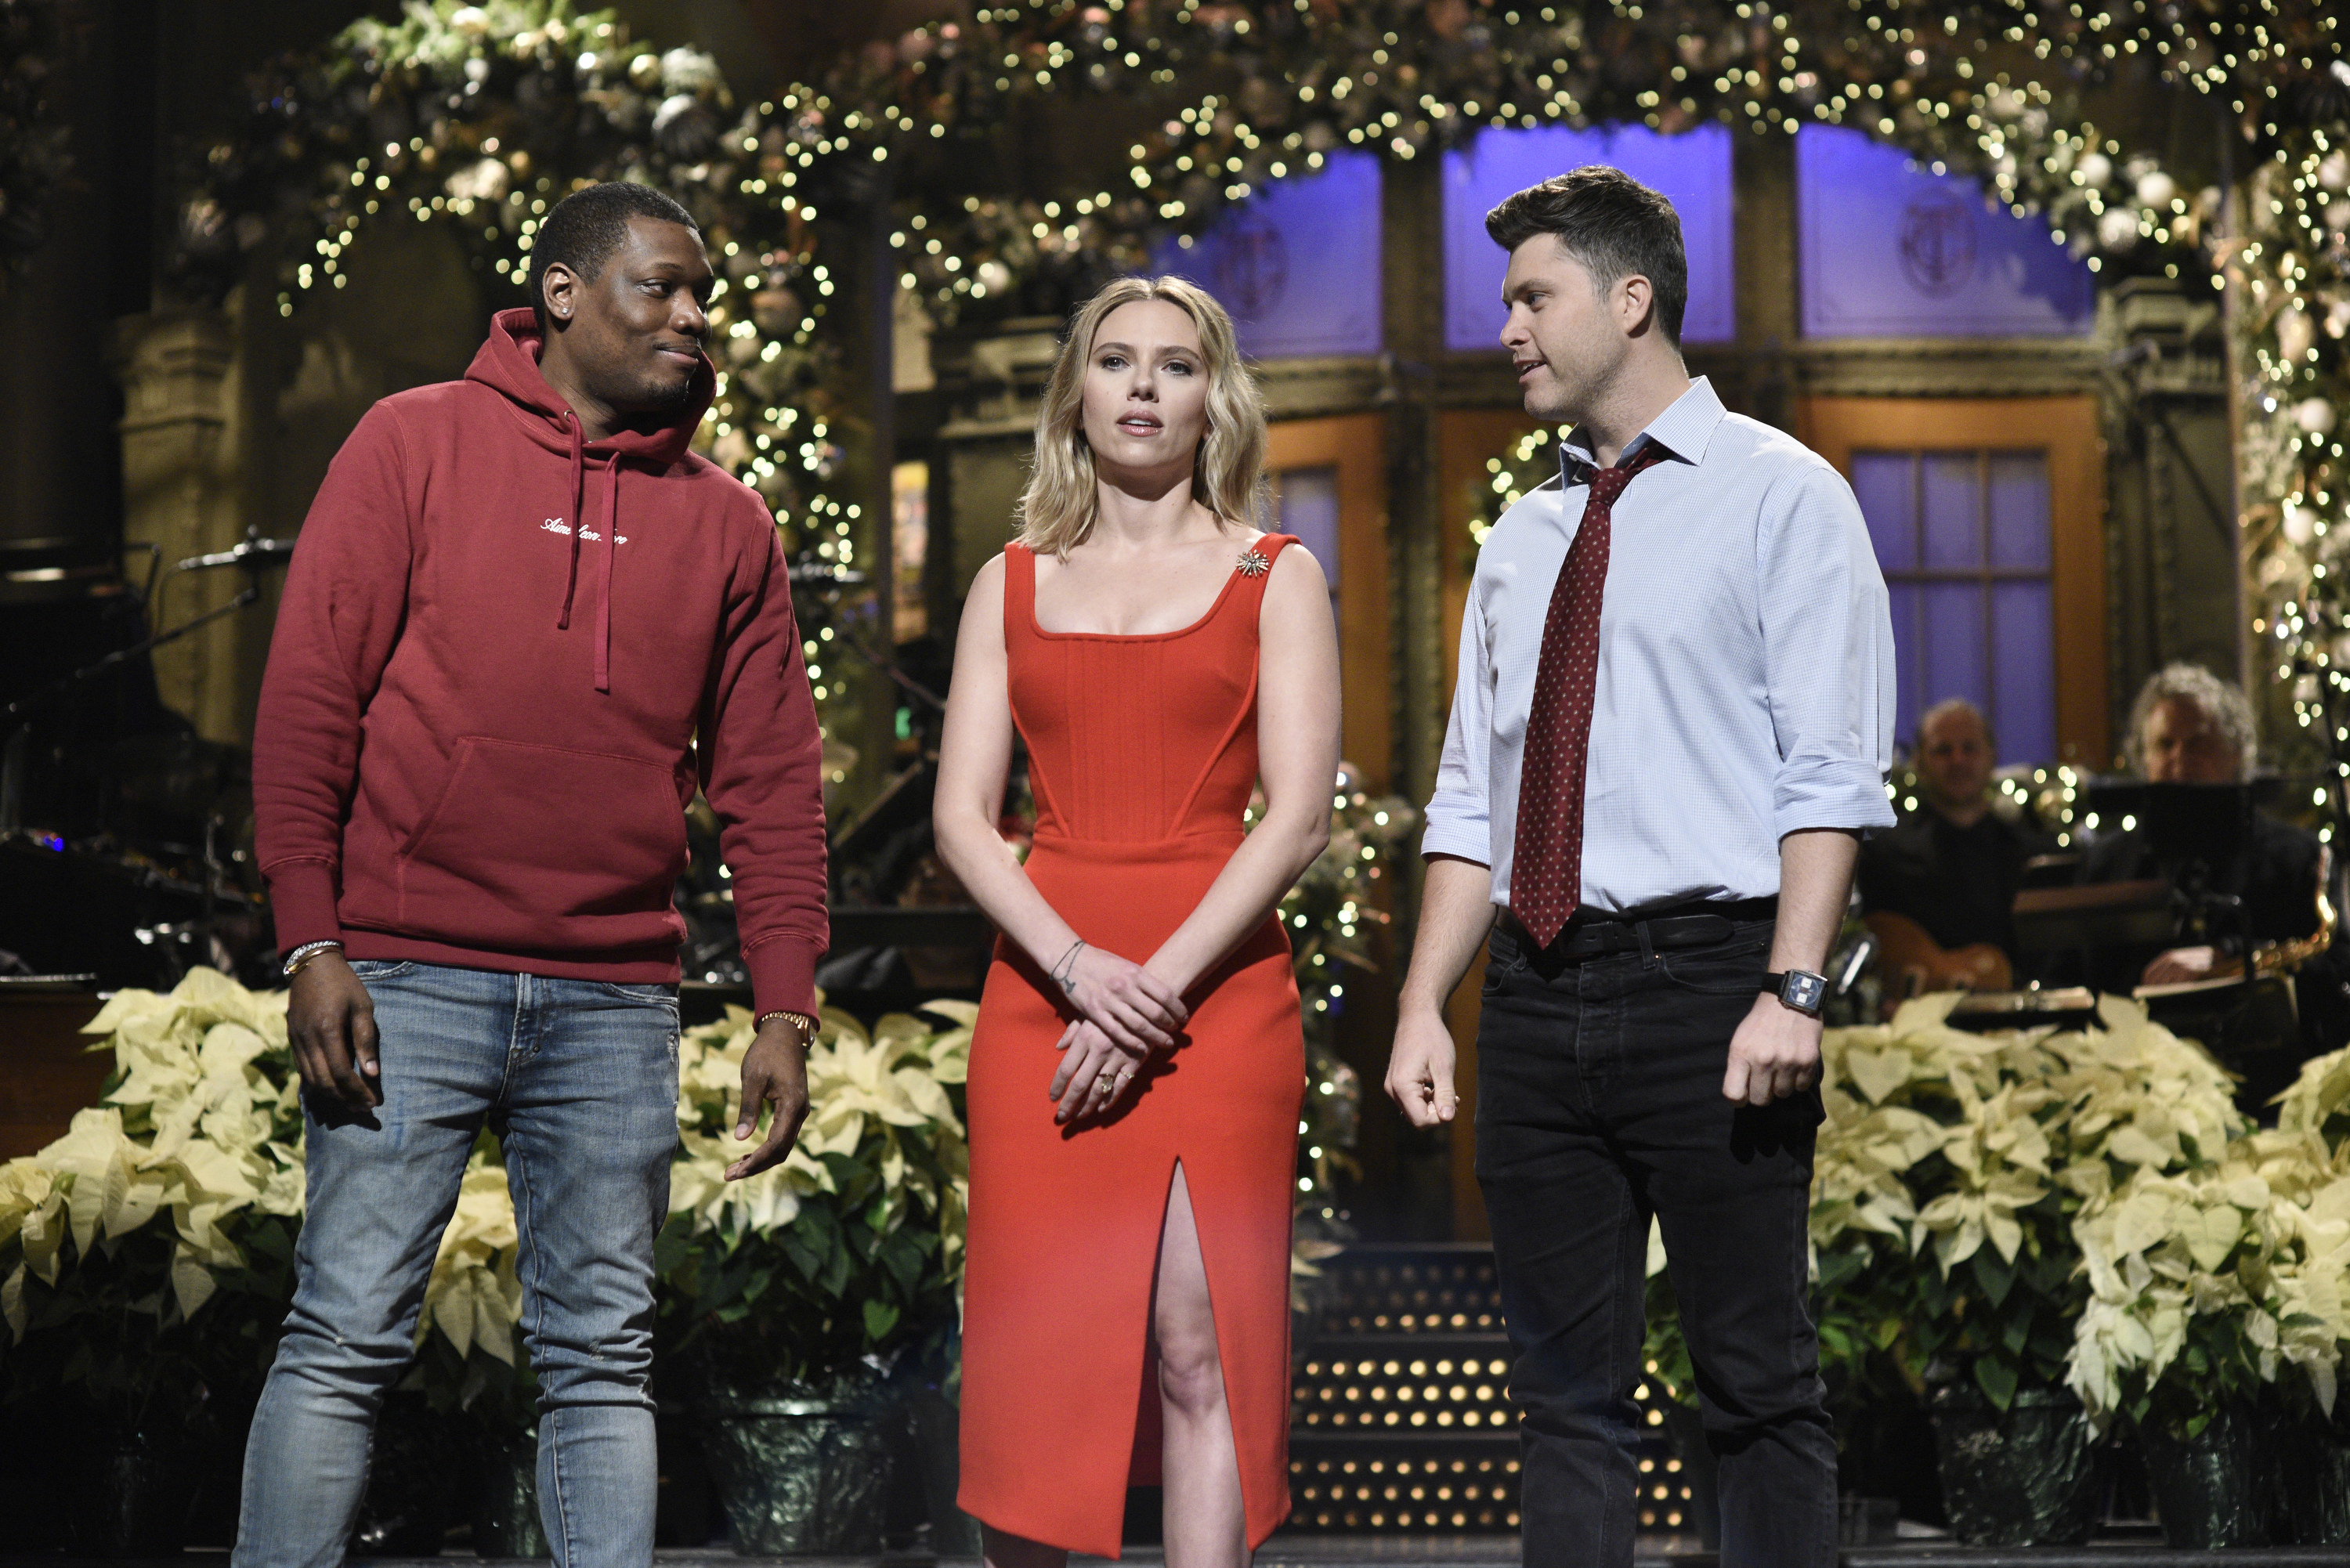 jost and johansson on stage at snl with michael che